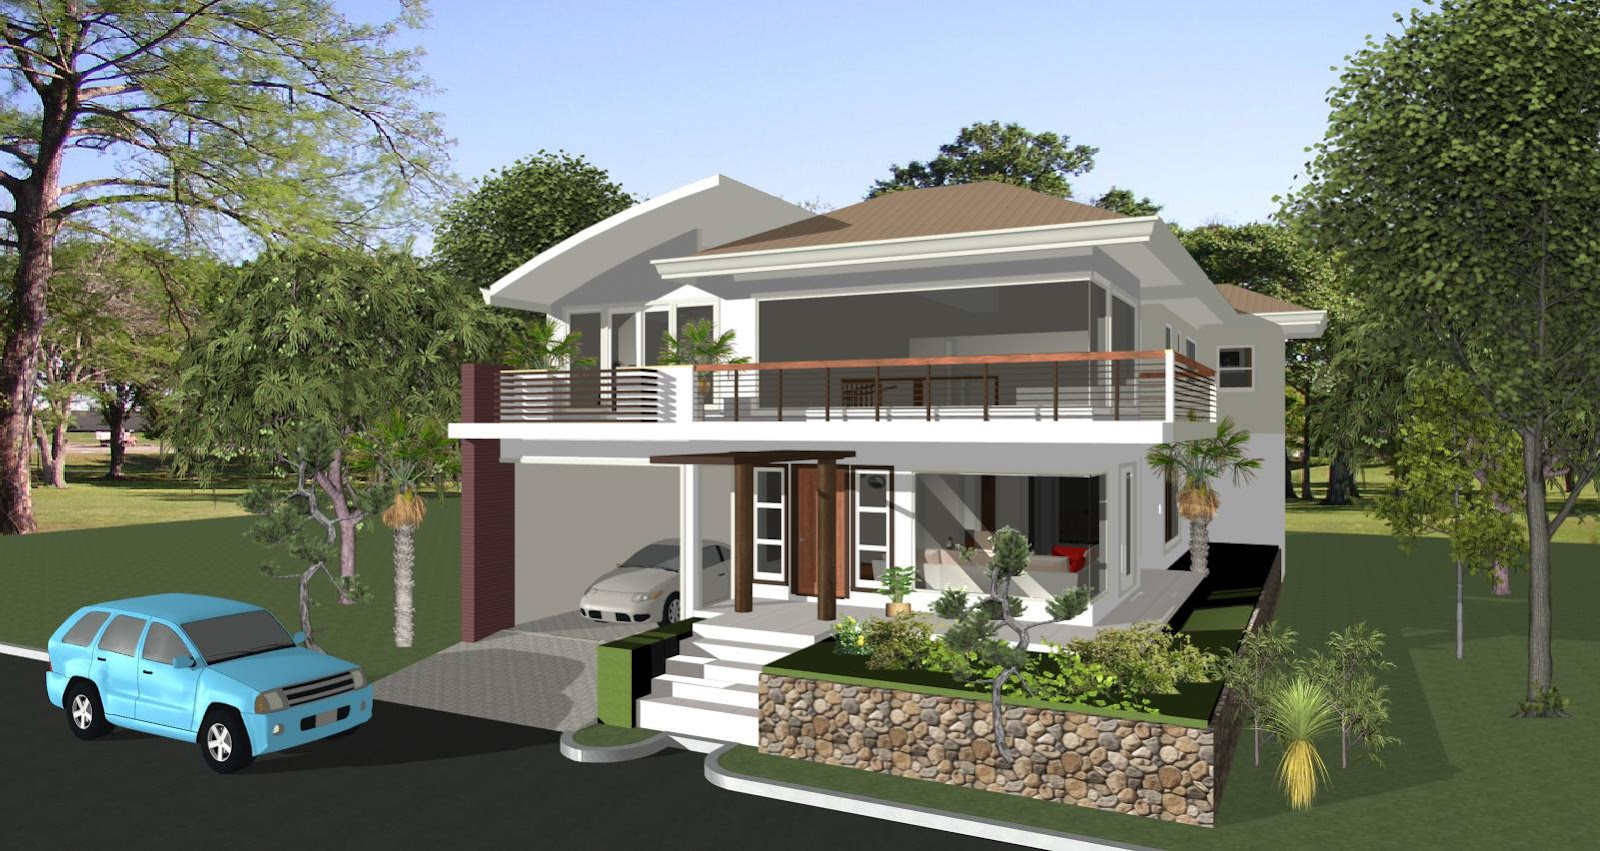 House designs philippines architect bill house plans House design sites